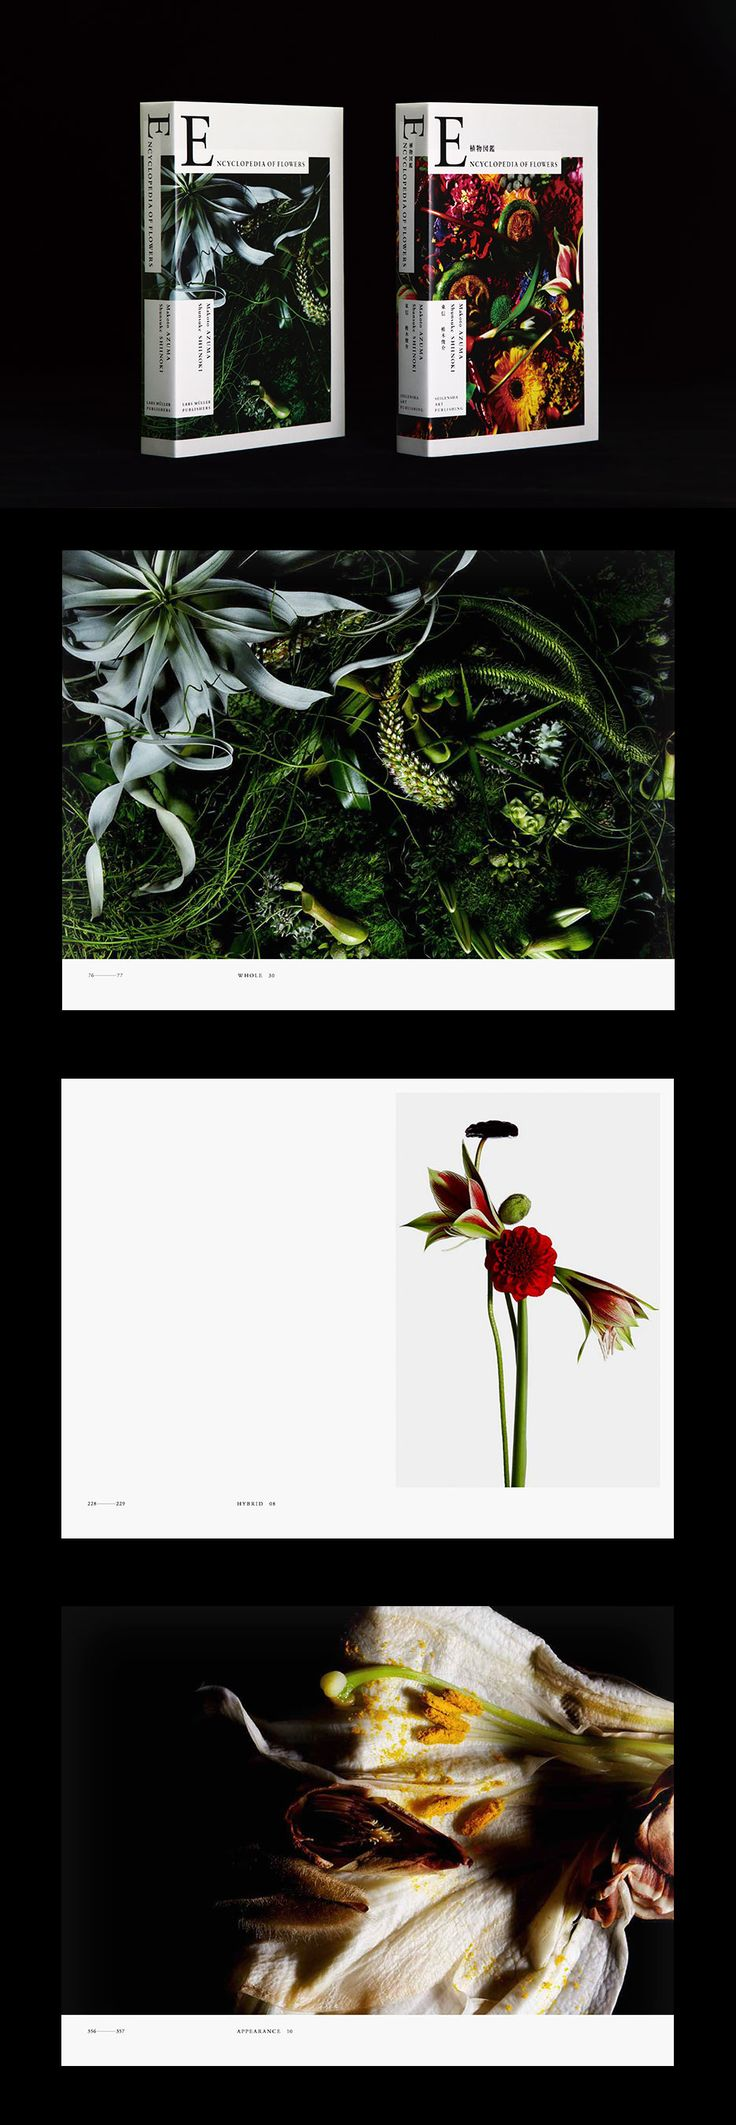 Encyclopedia of Flowers-植物図鑑(青幻舎)Encyclopedia of Flowers(Lars Müller Publishers / 2012年10月発売予定)